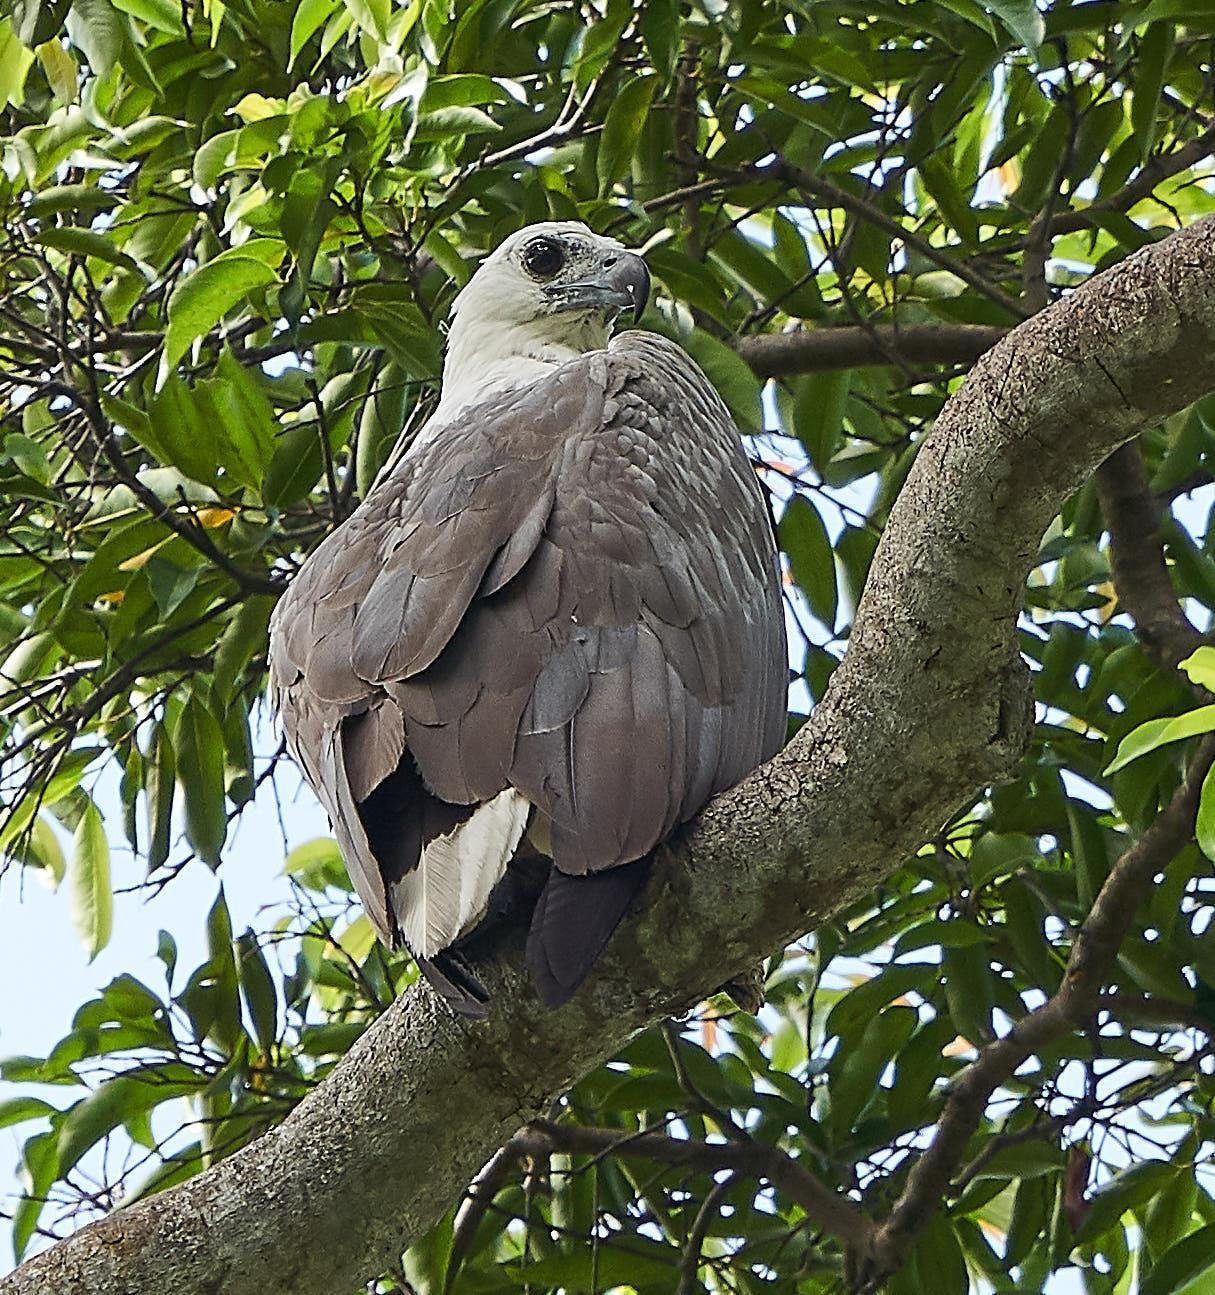 White-bellied Sea-Eagle Photo by Steven Cheong